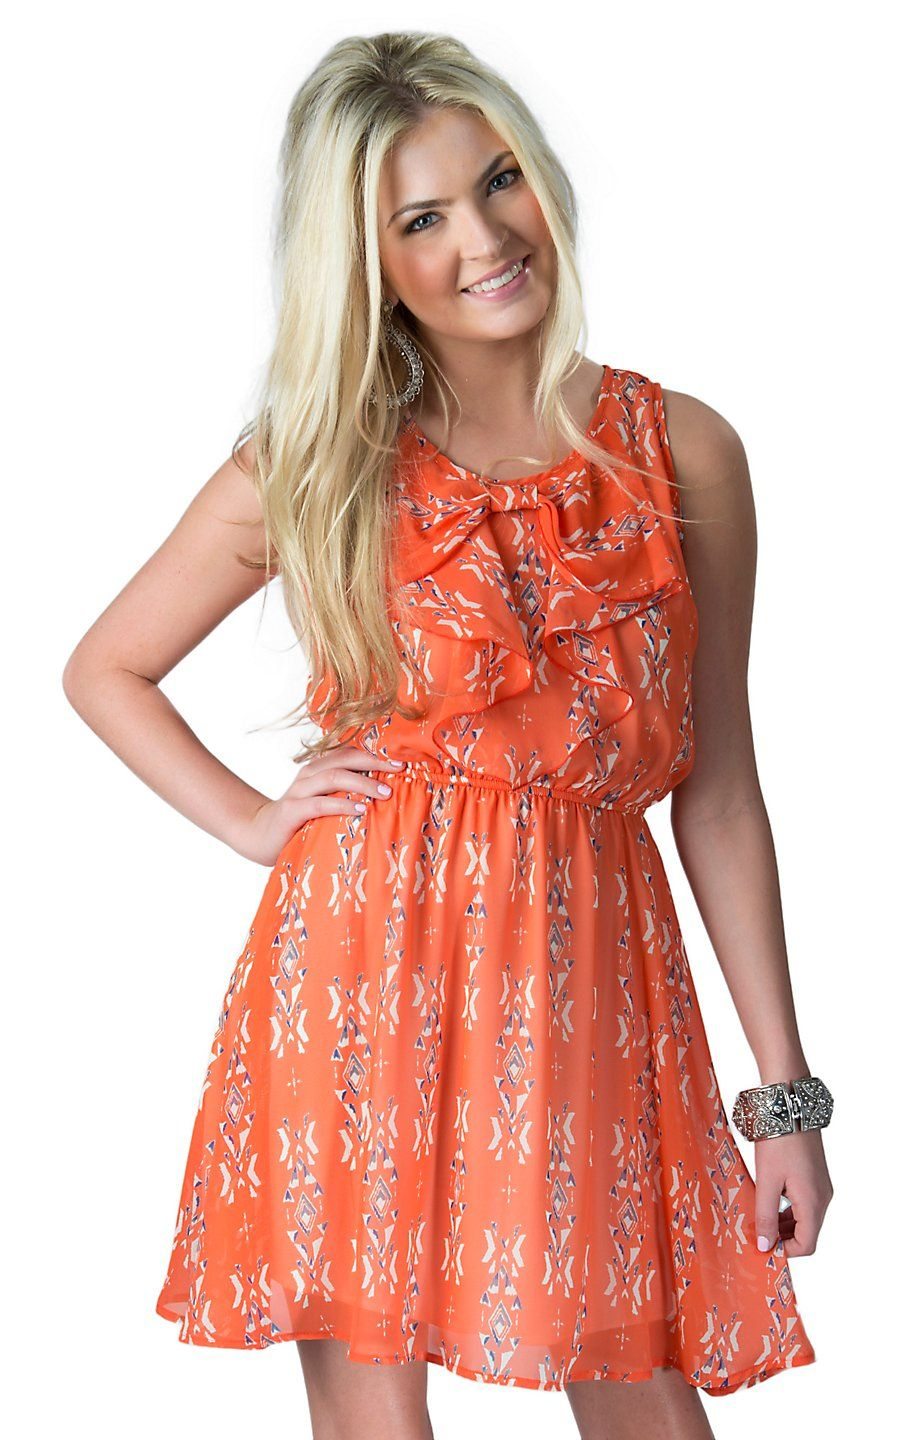 B Sharp Women S Orange With White And Blue Tribal Print Bow Front Sleeveless Dress Cowgirl Dresses Country Western Dresses Western Dresses For Women [ 1440 x 900 Pixel ]